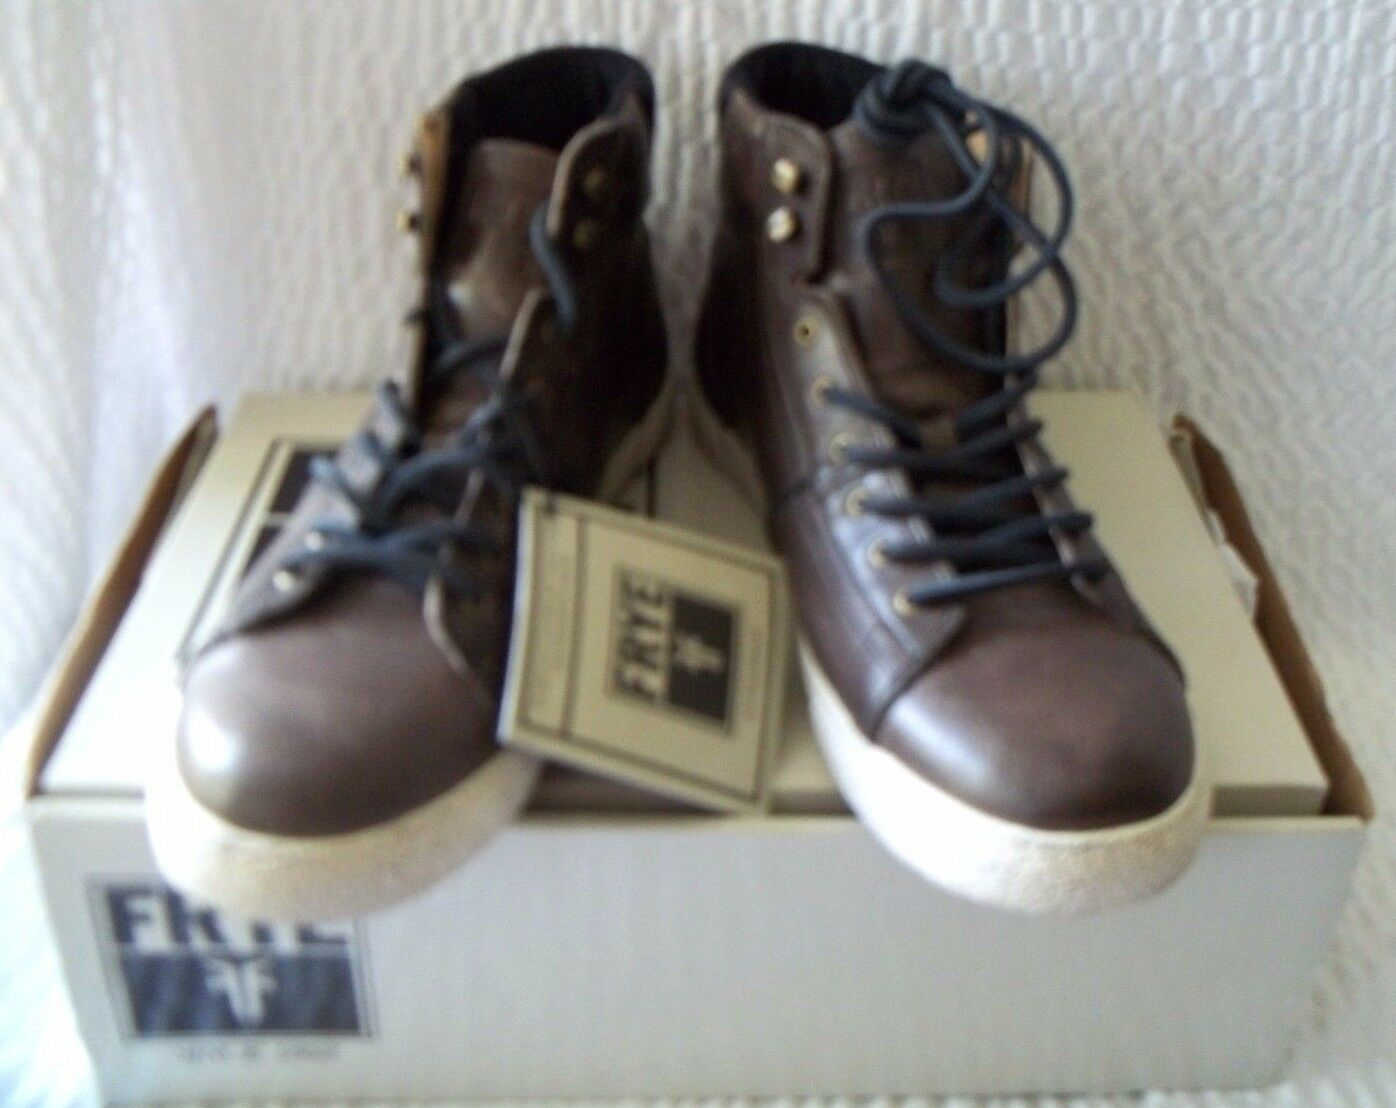 ac3c983cdafe Frye Bedford Bedford Bedford High Top Charcoal Brown Leather Men s Sneakers  Size 10 1 2